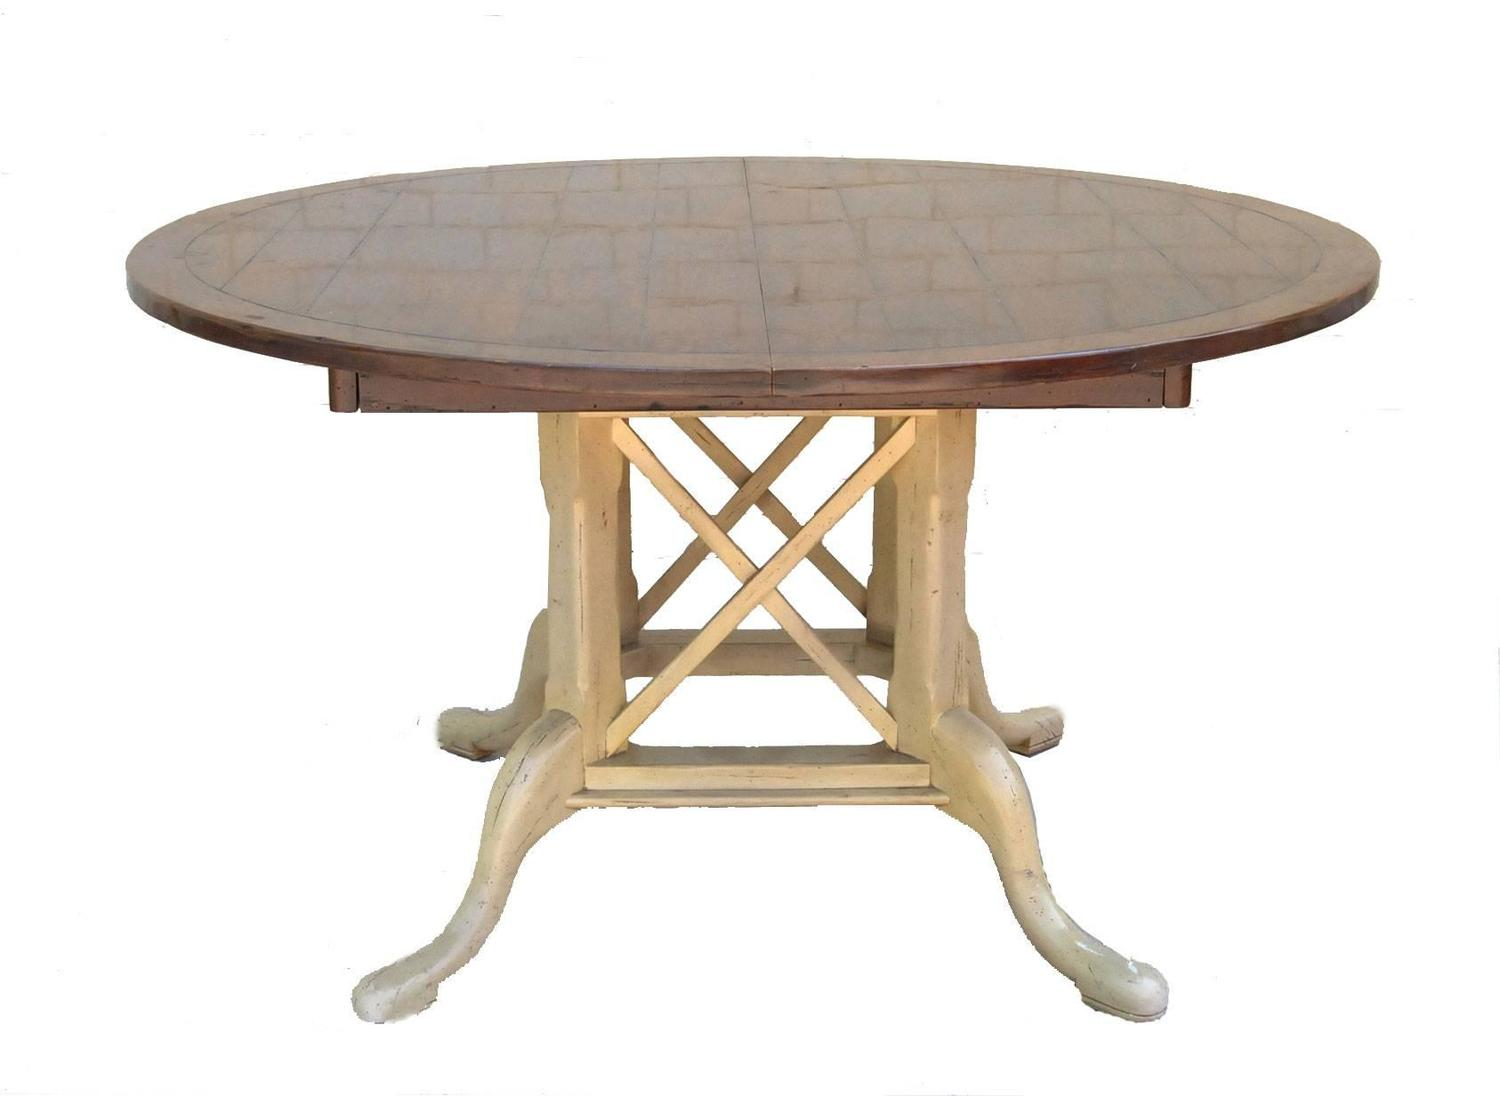 Country French Kettering Round Table and Six Dudley Side Chairs by Guy Chaddock For Sale at 1stdibs